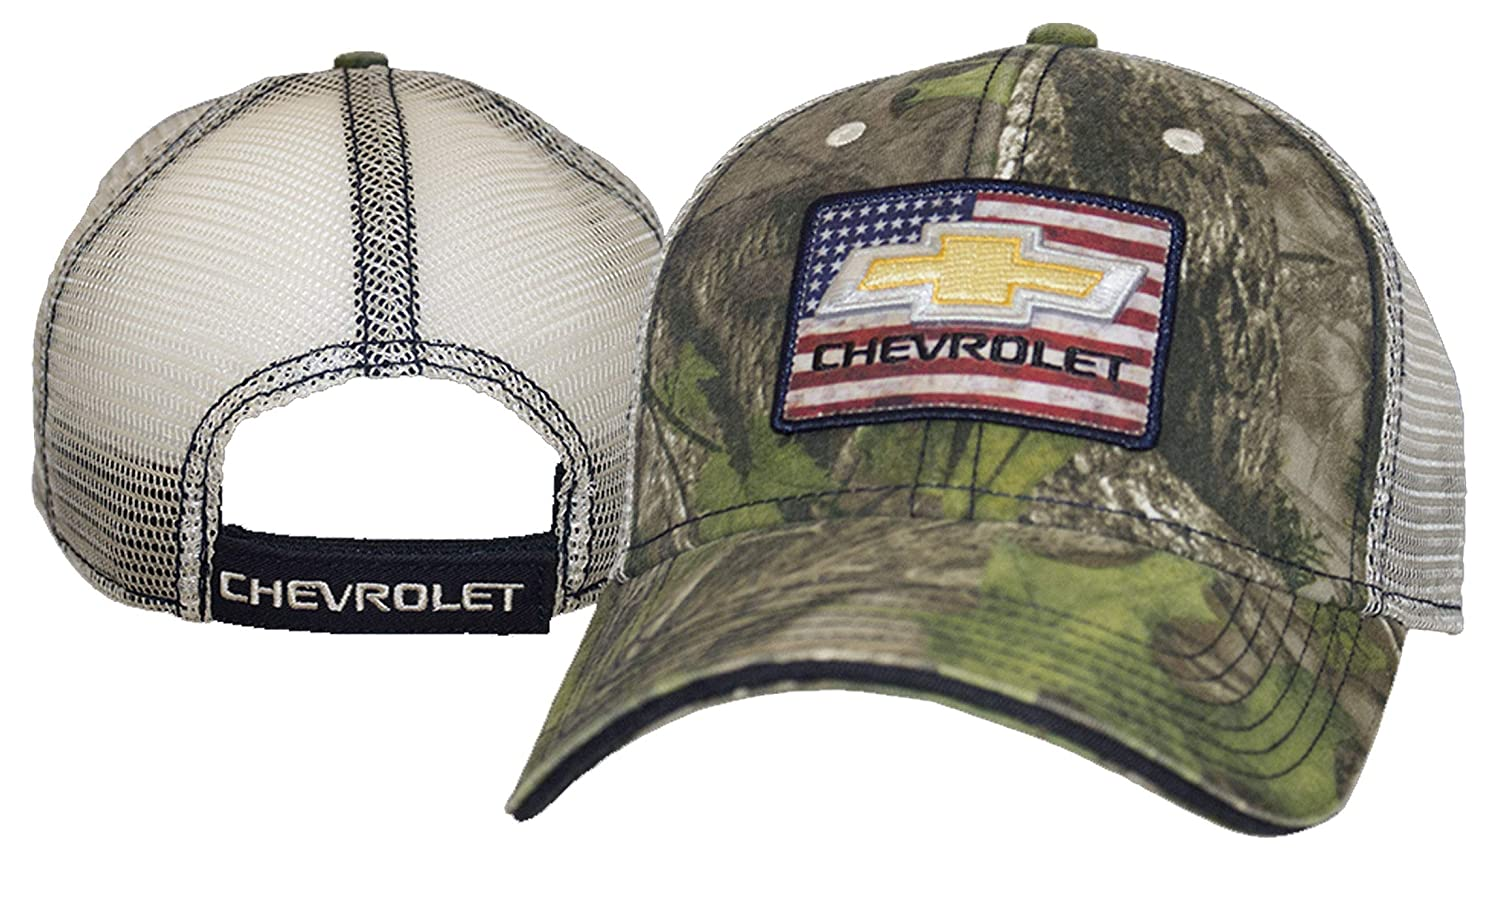 Bundle with Driving Style Decal CH-2204 Gregs Automotive Chevrolet USA Flag Hat Cap Camo Camouflage